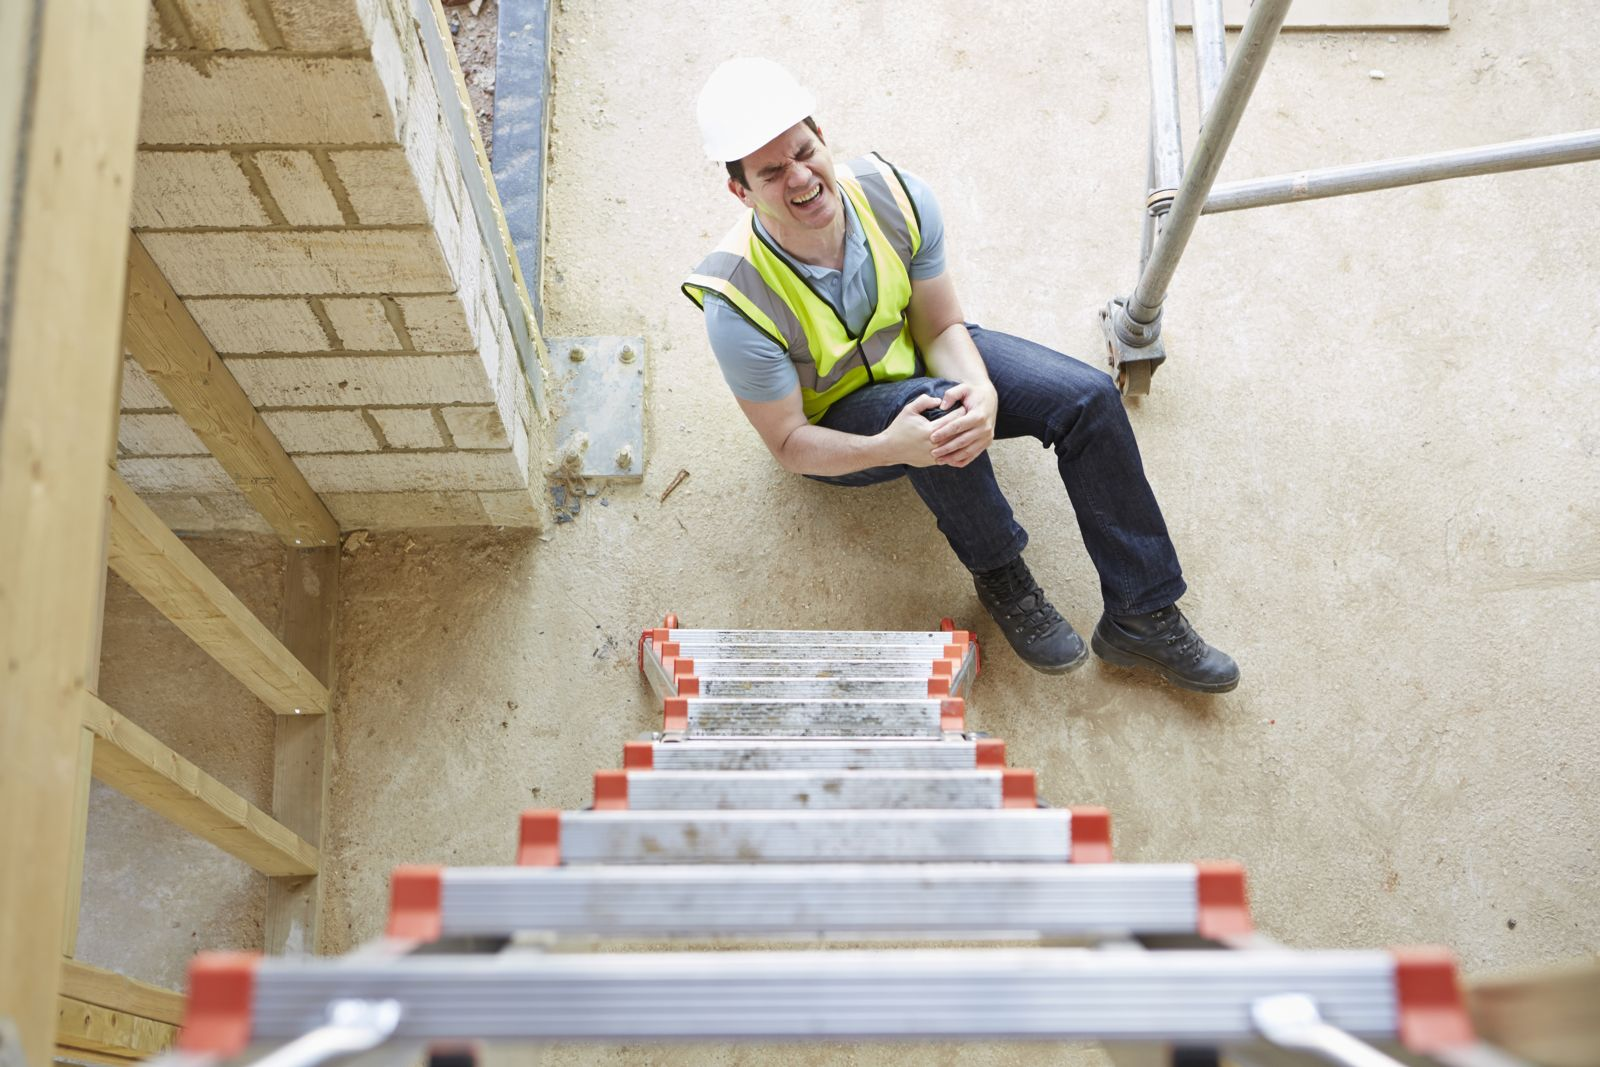 Man in pain after falling from ladder